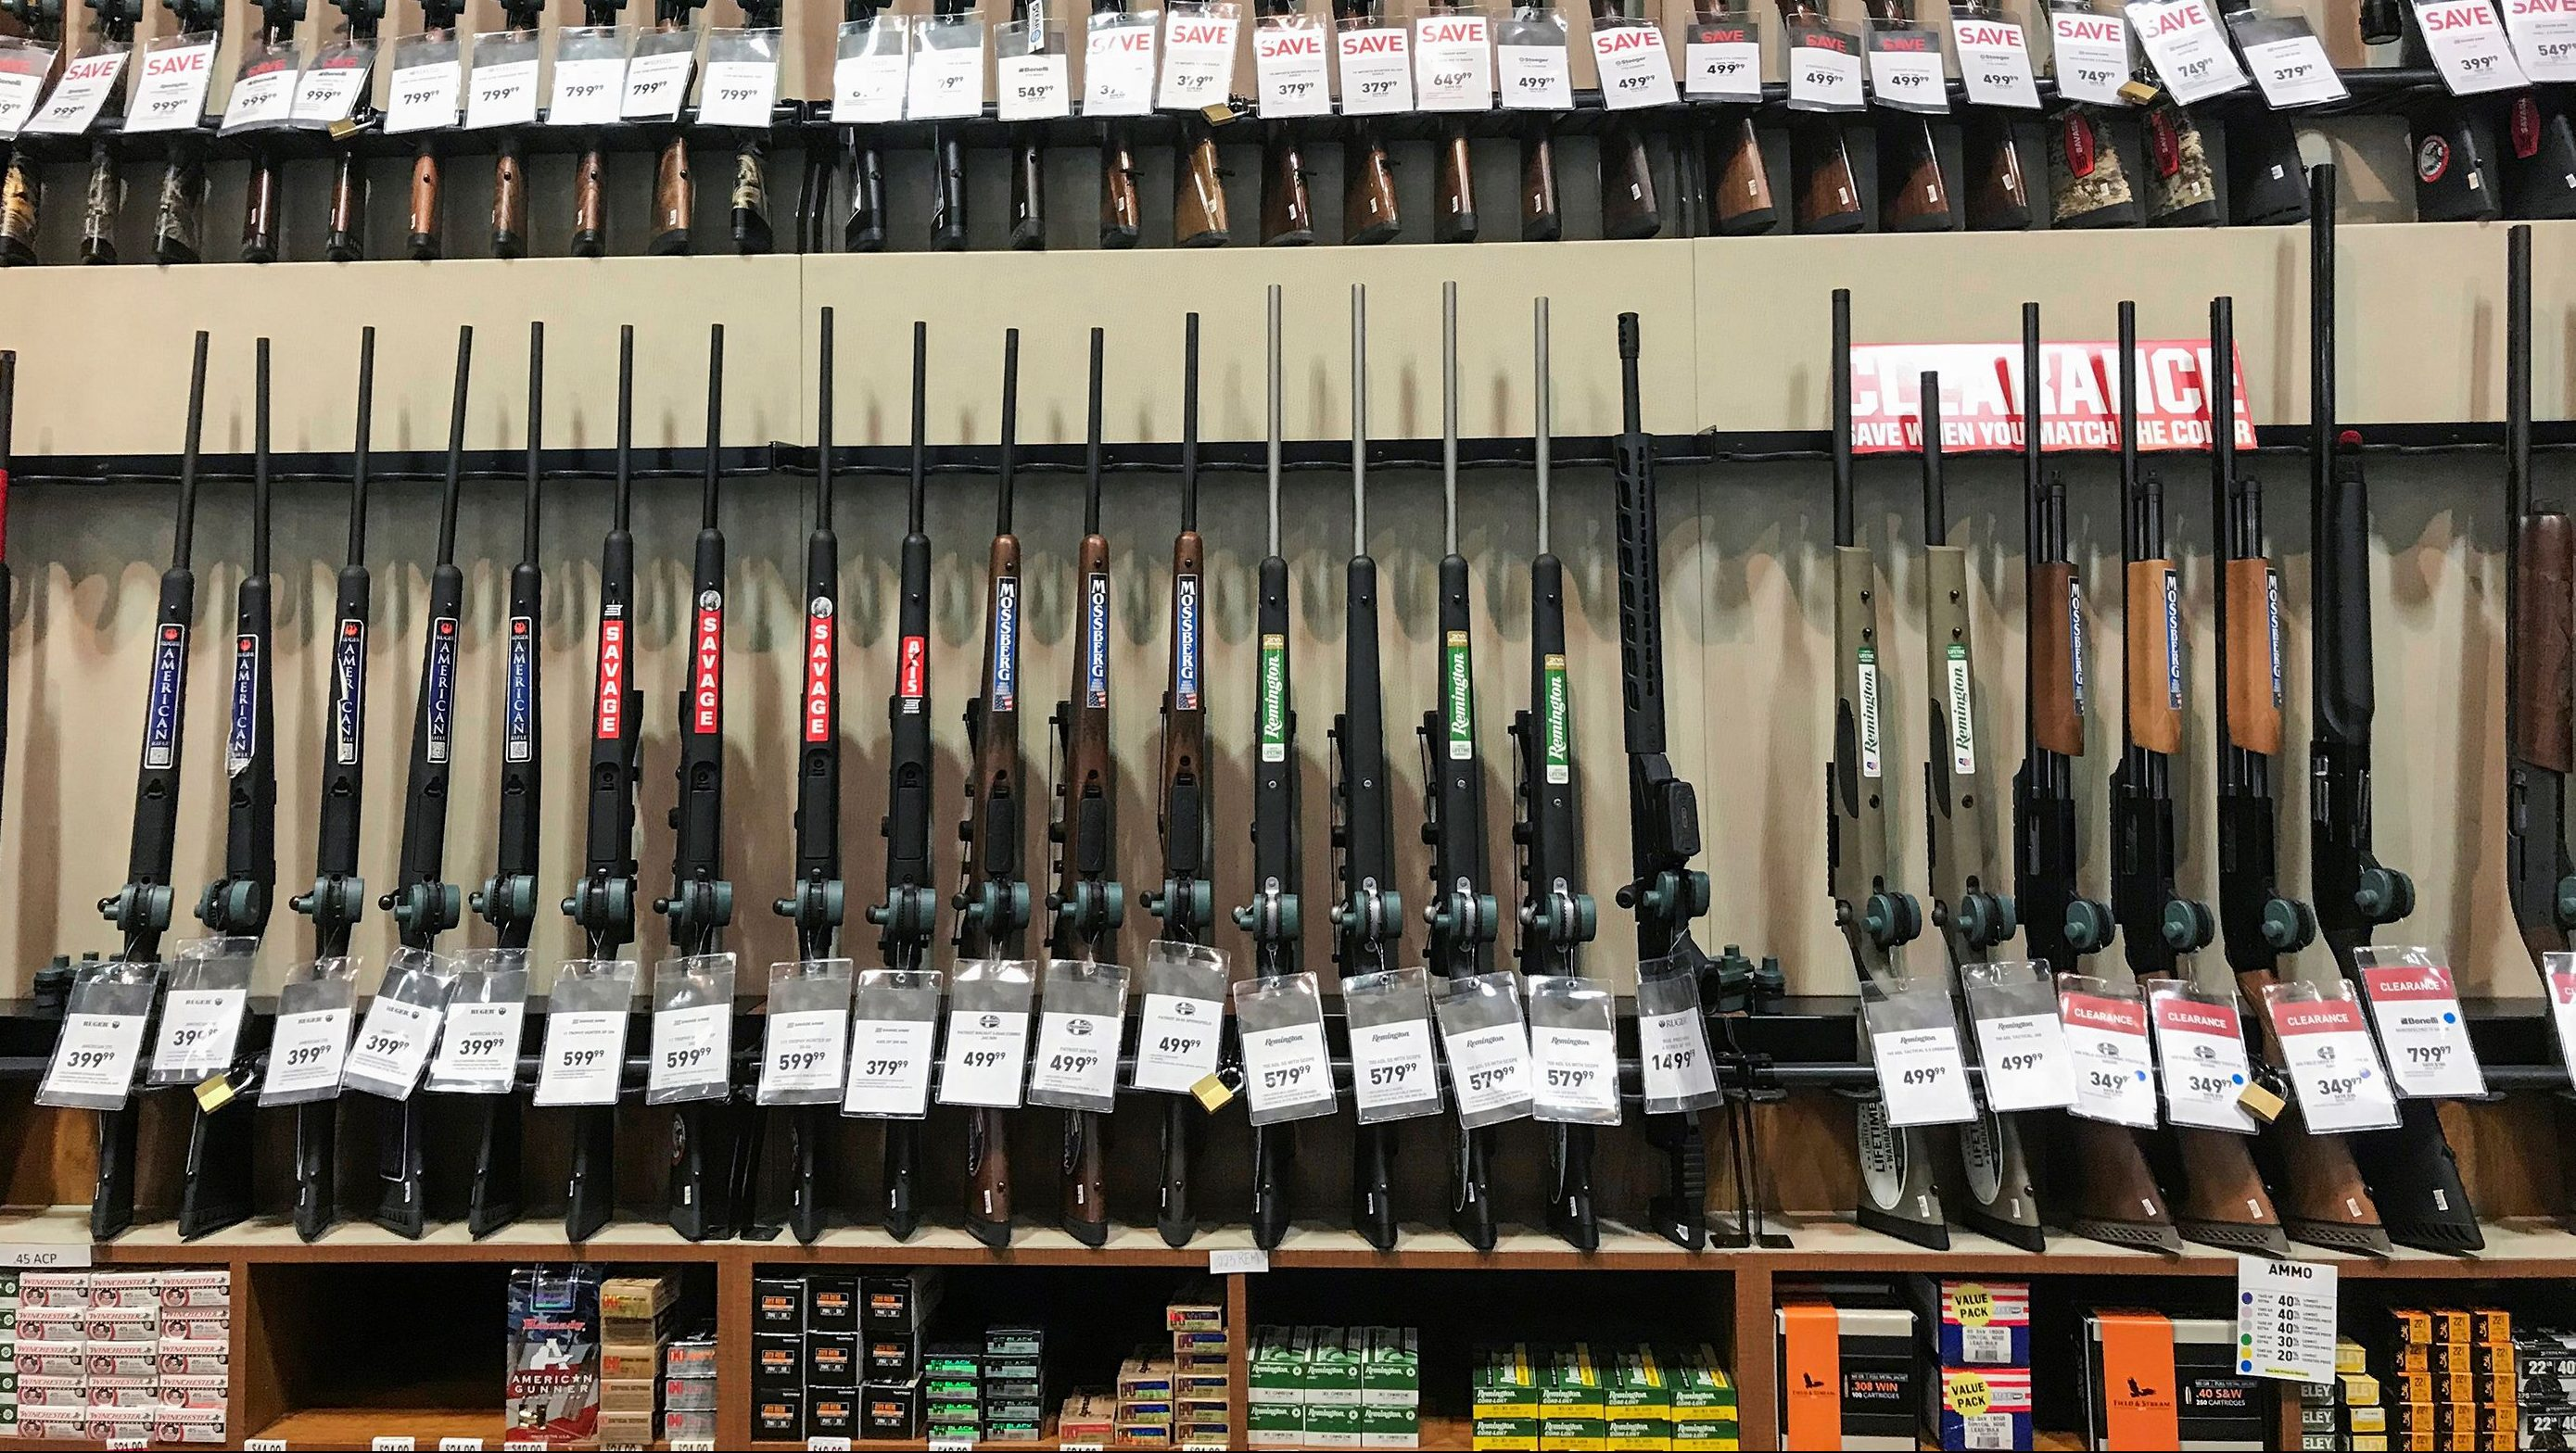 Guns for sale are seen inside of Dick's Sporting Goods store in Stroudsburg, Pennsylvania, U.S., February 28, 2018.